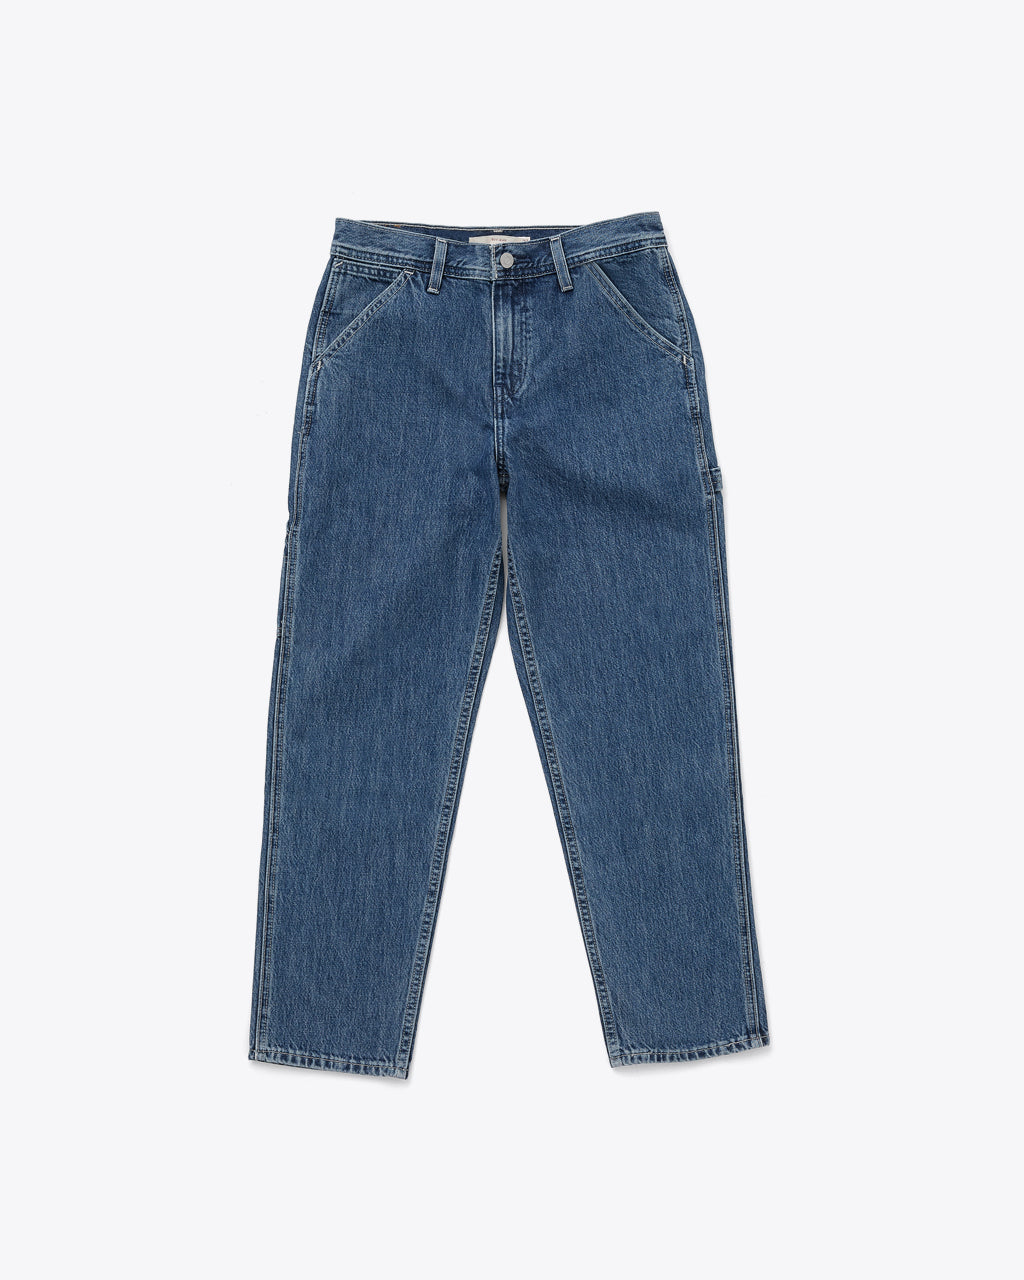 medium wash jeans with a loose fit and a straight leg